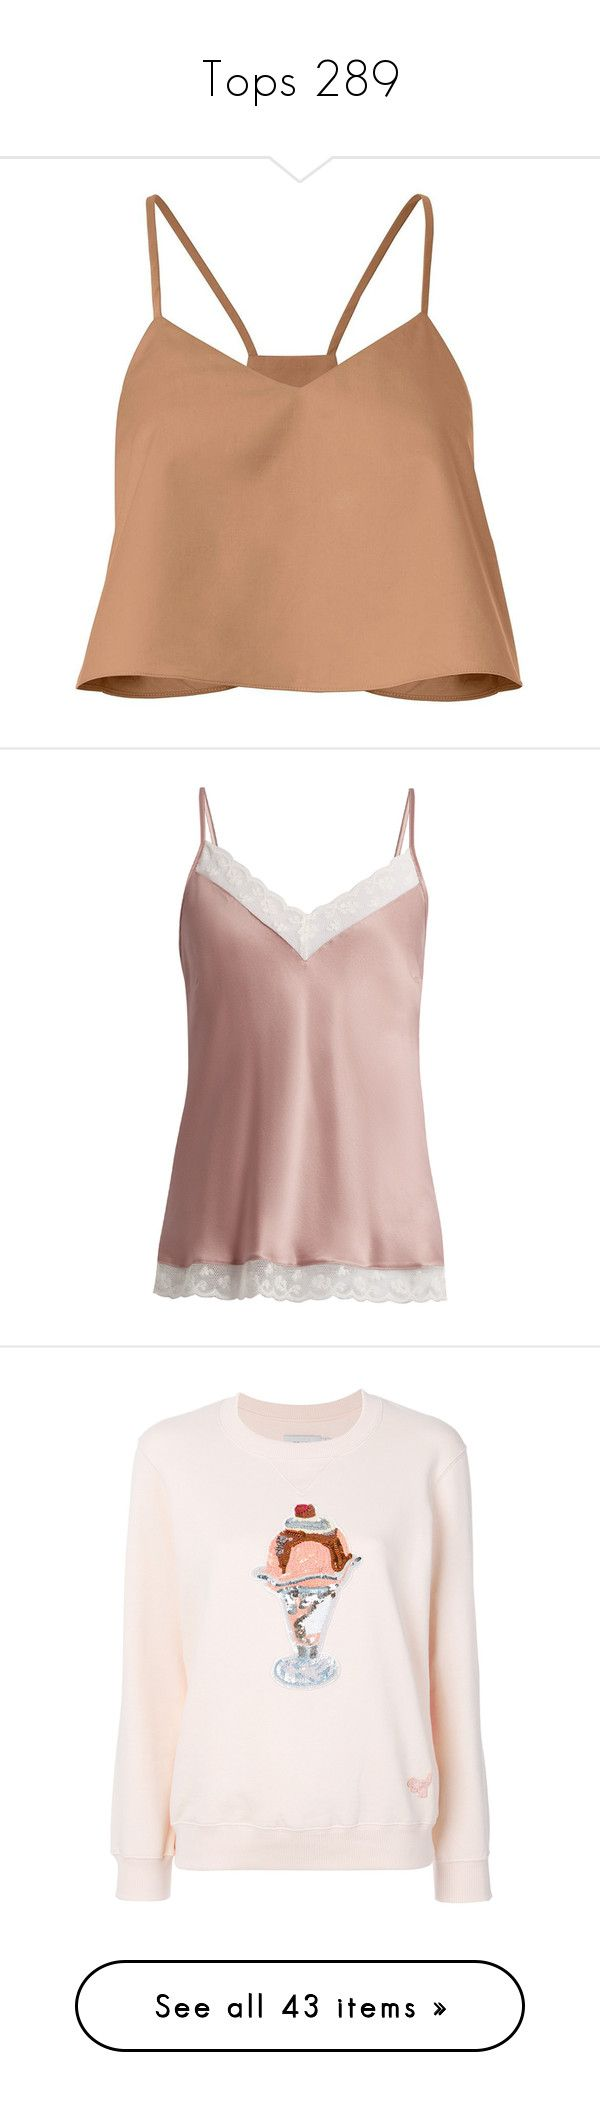 """""""Tops 289"""" by singlemom ❤ liked on Polyvore featuring tops, v neck crop top, beige crop top, ruched top, cropped pullover, v-neck tops, pink, pink silk camisole, silk camisole tops and silk camisole"""